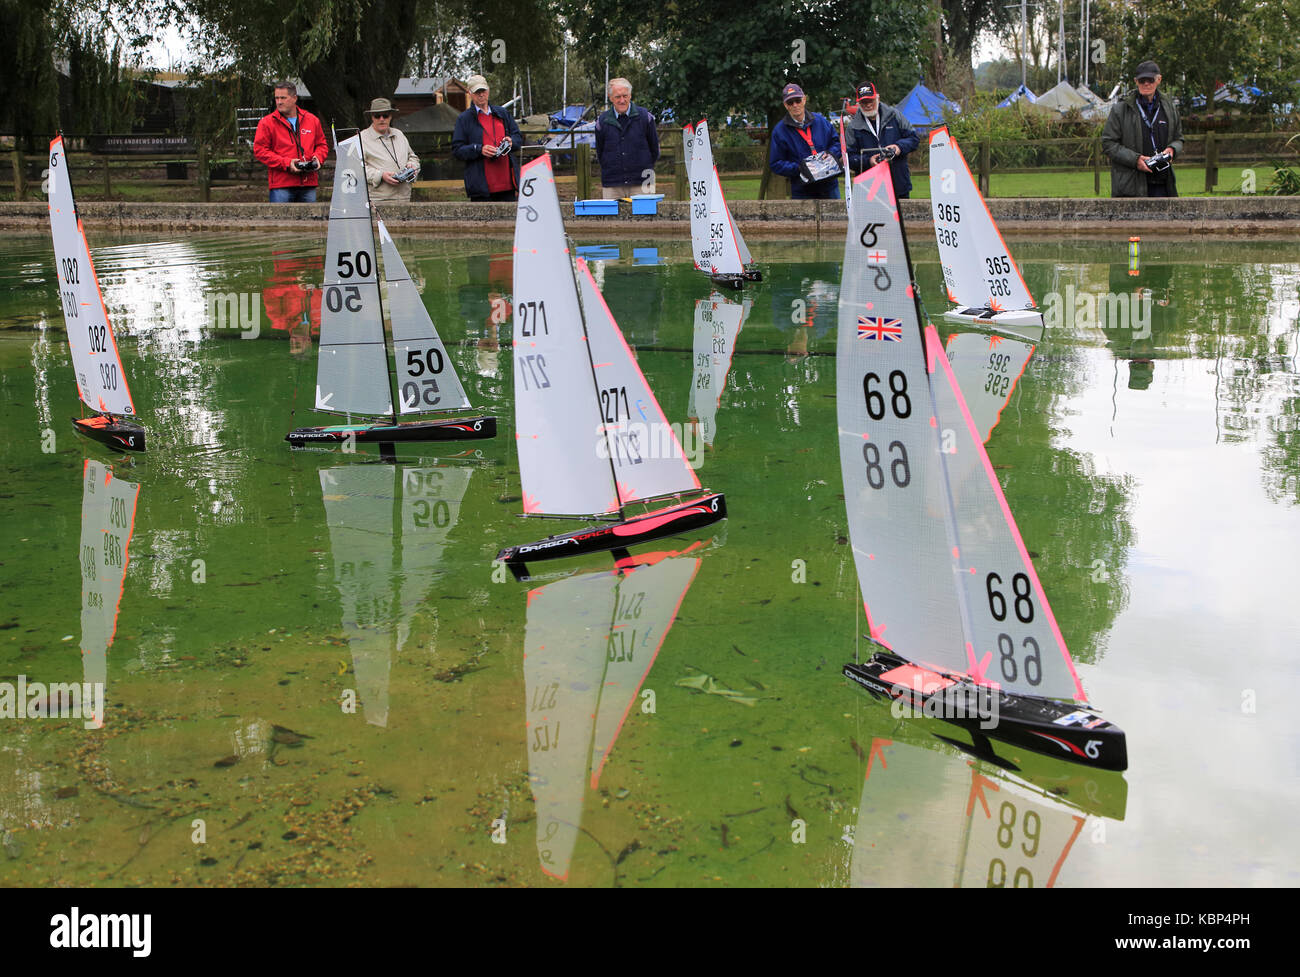 Model Boat Club Stock Photos & Model Boat Club Stock Images - Alamy